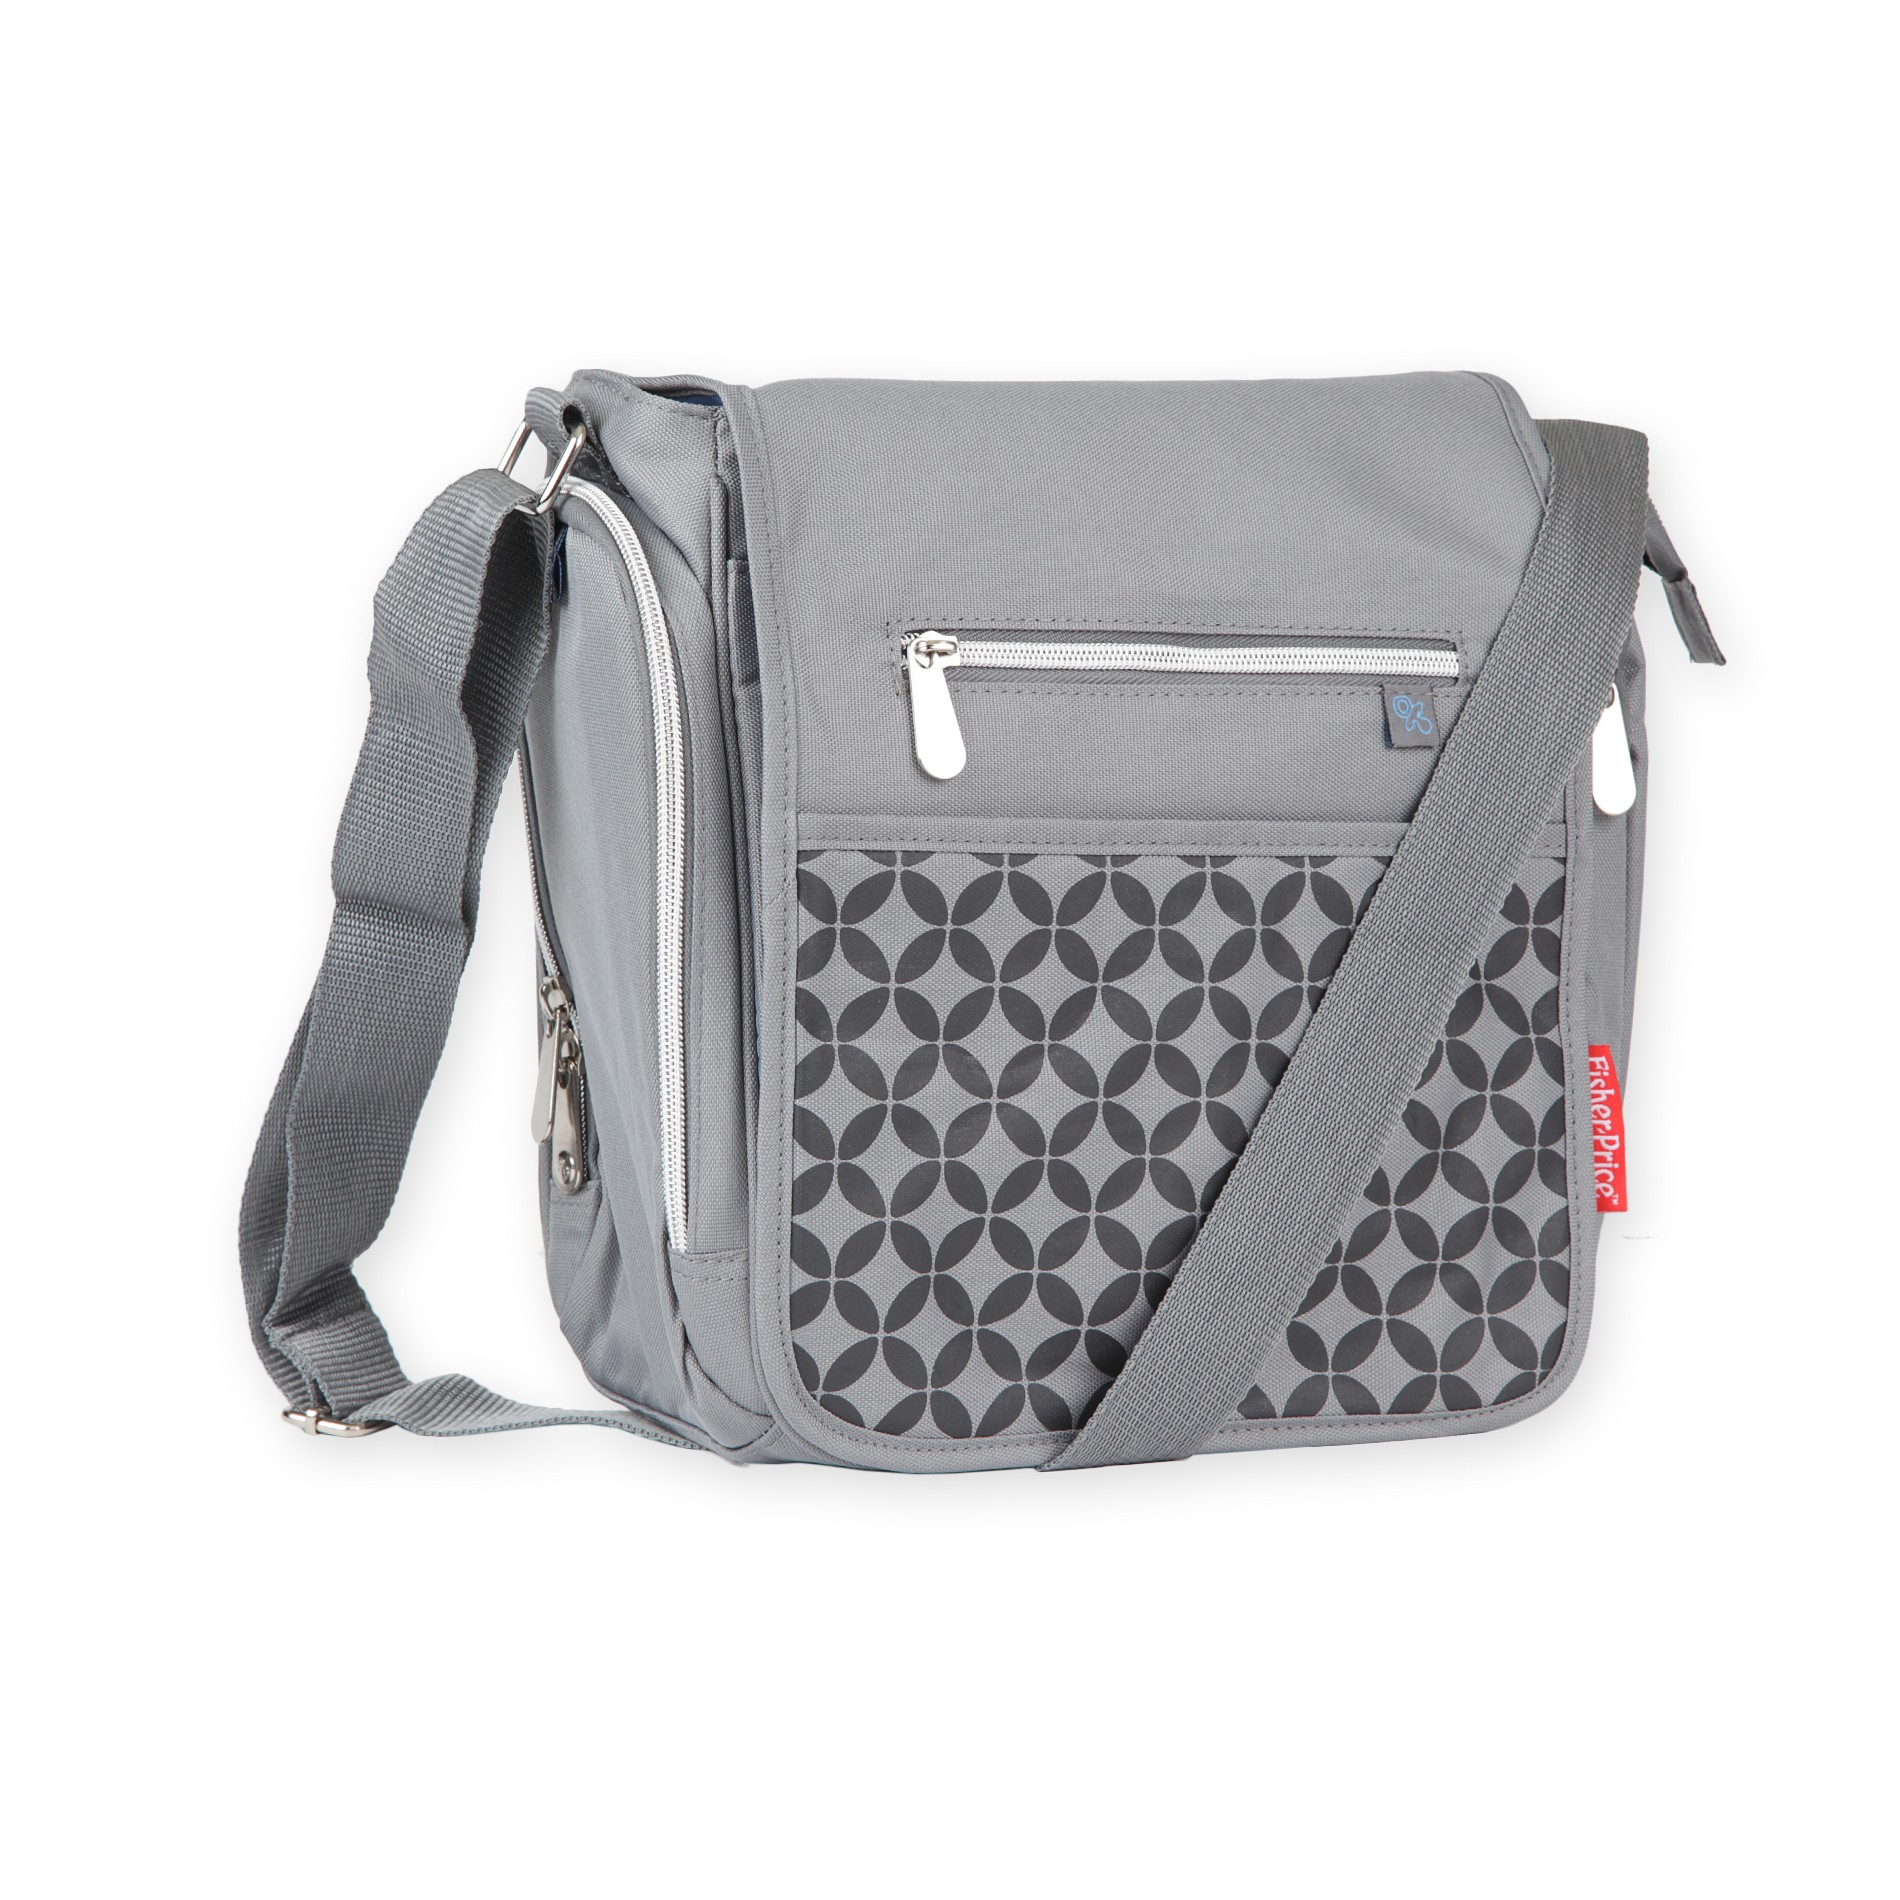 Small Diaper Bags That Look Like Purses Best Purse Image Ccdbb